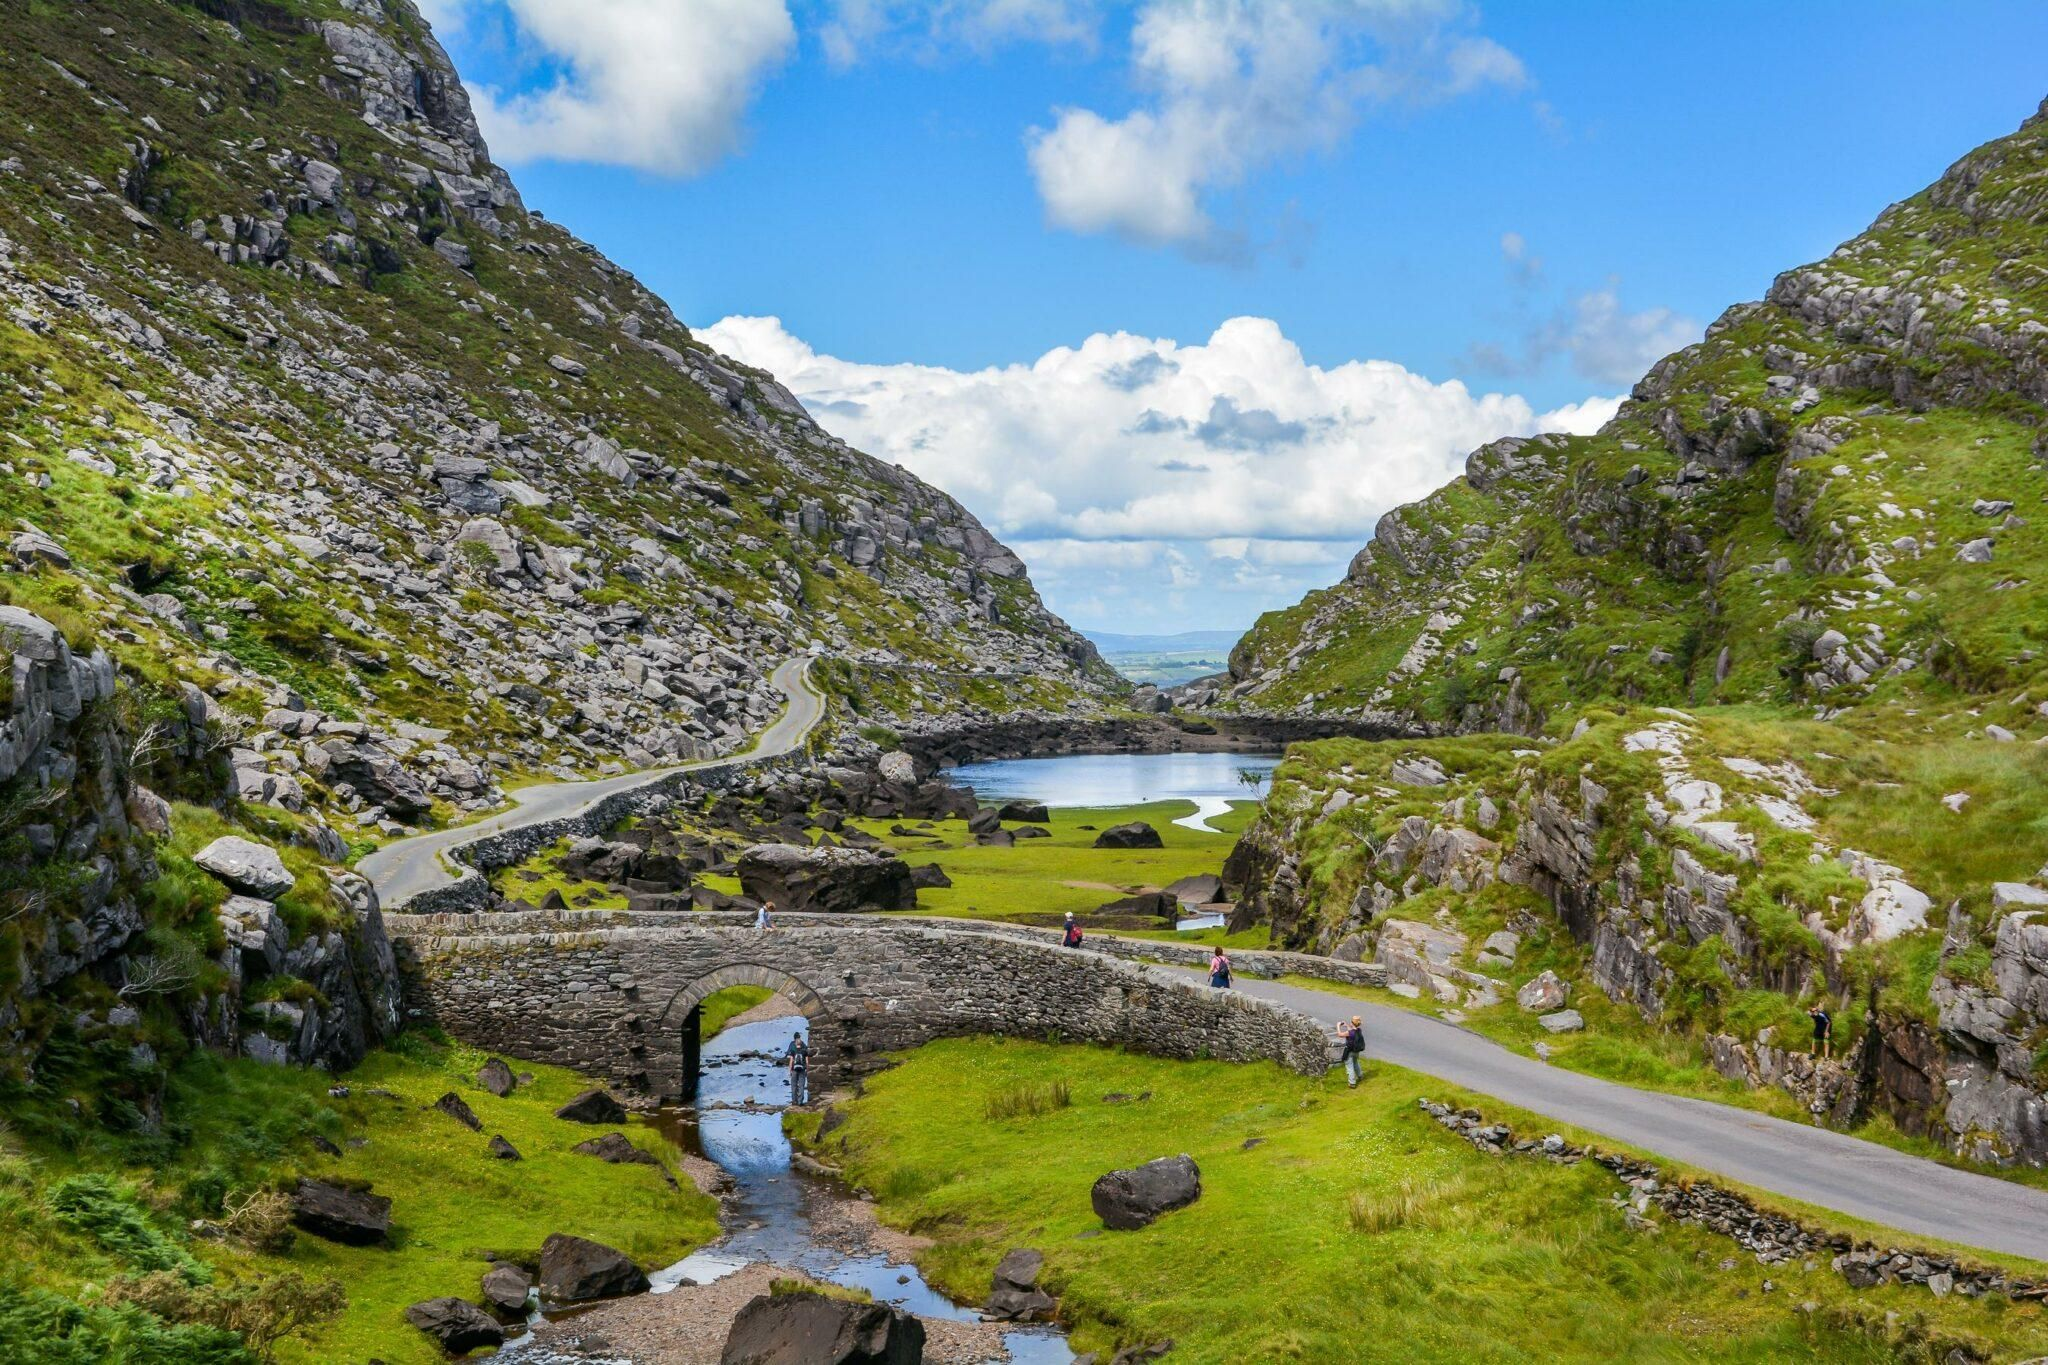 10 Best All Inclusive Resorts For Families In The Us Ireland Hiking Best Hikes Driving In Ireland